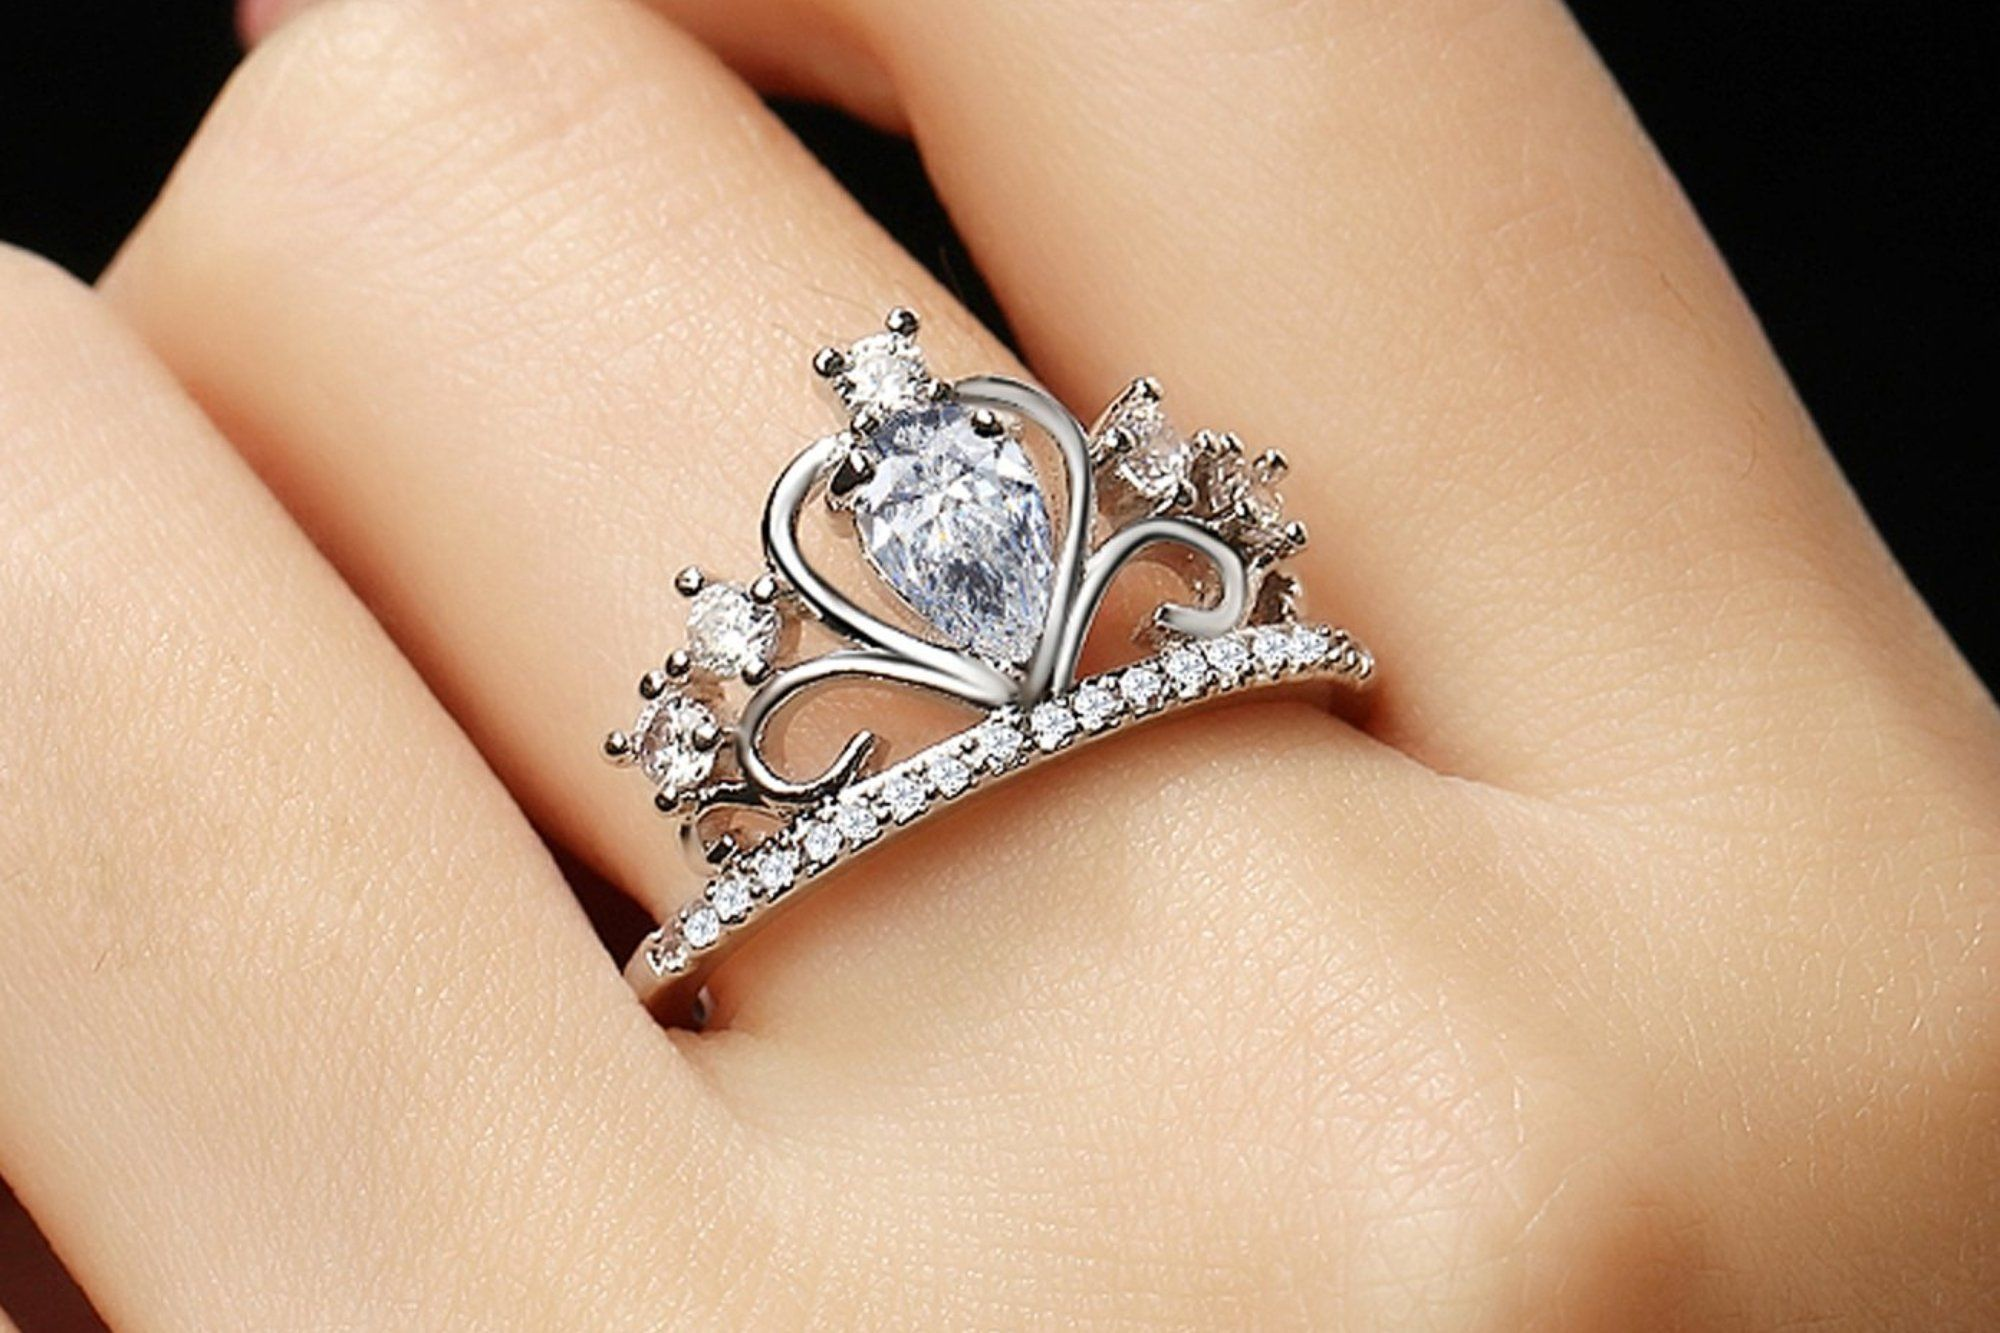 Anastasia Crystal Princess Crown Promise Ring in Gold or Silver